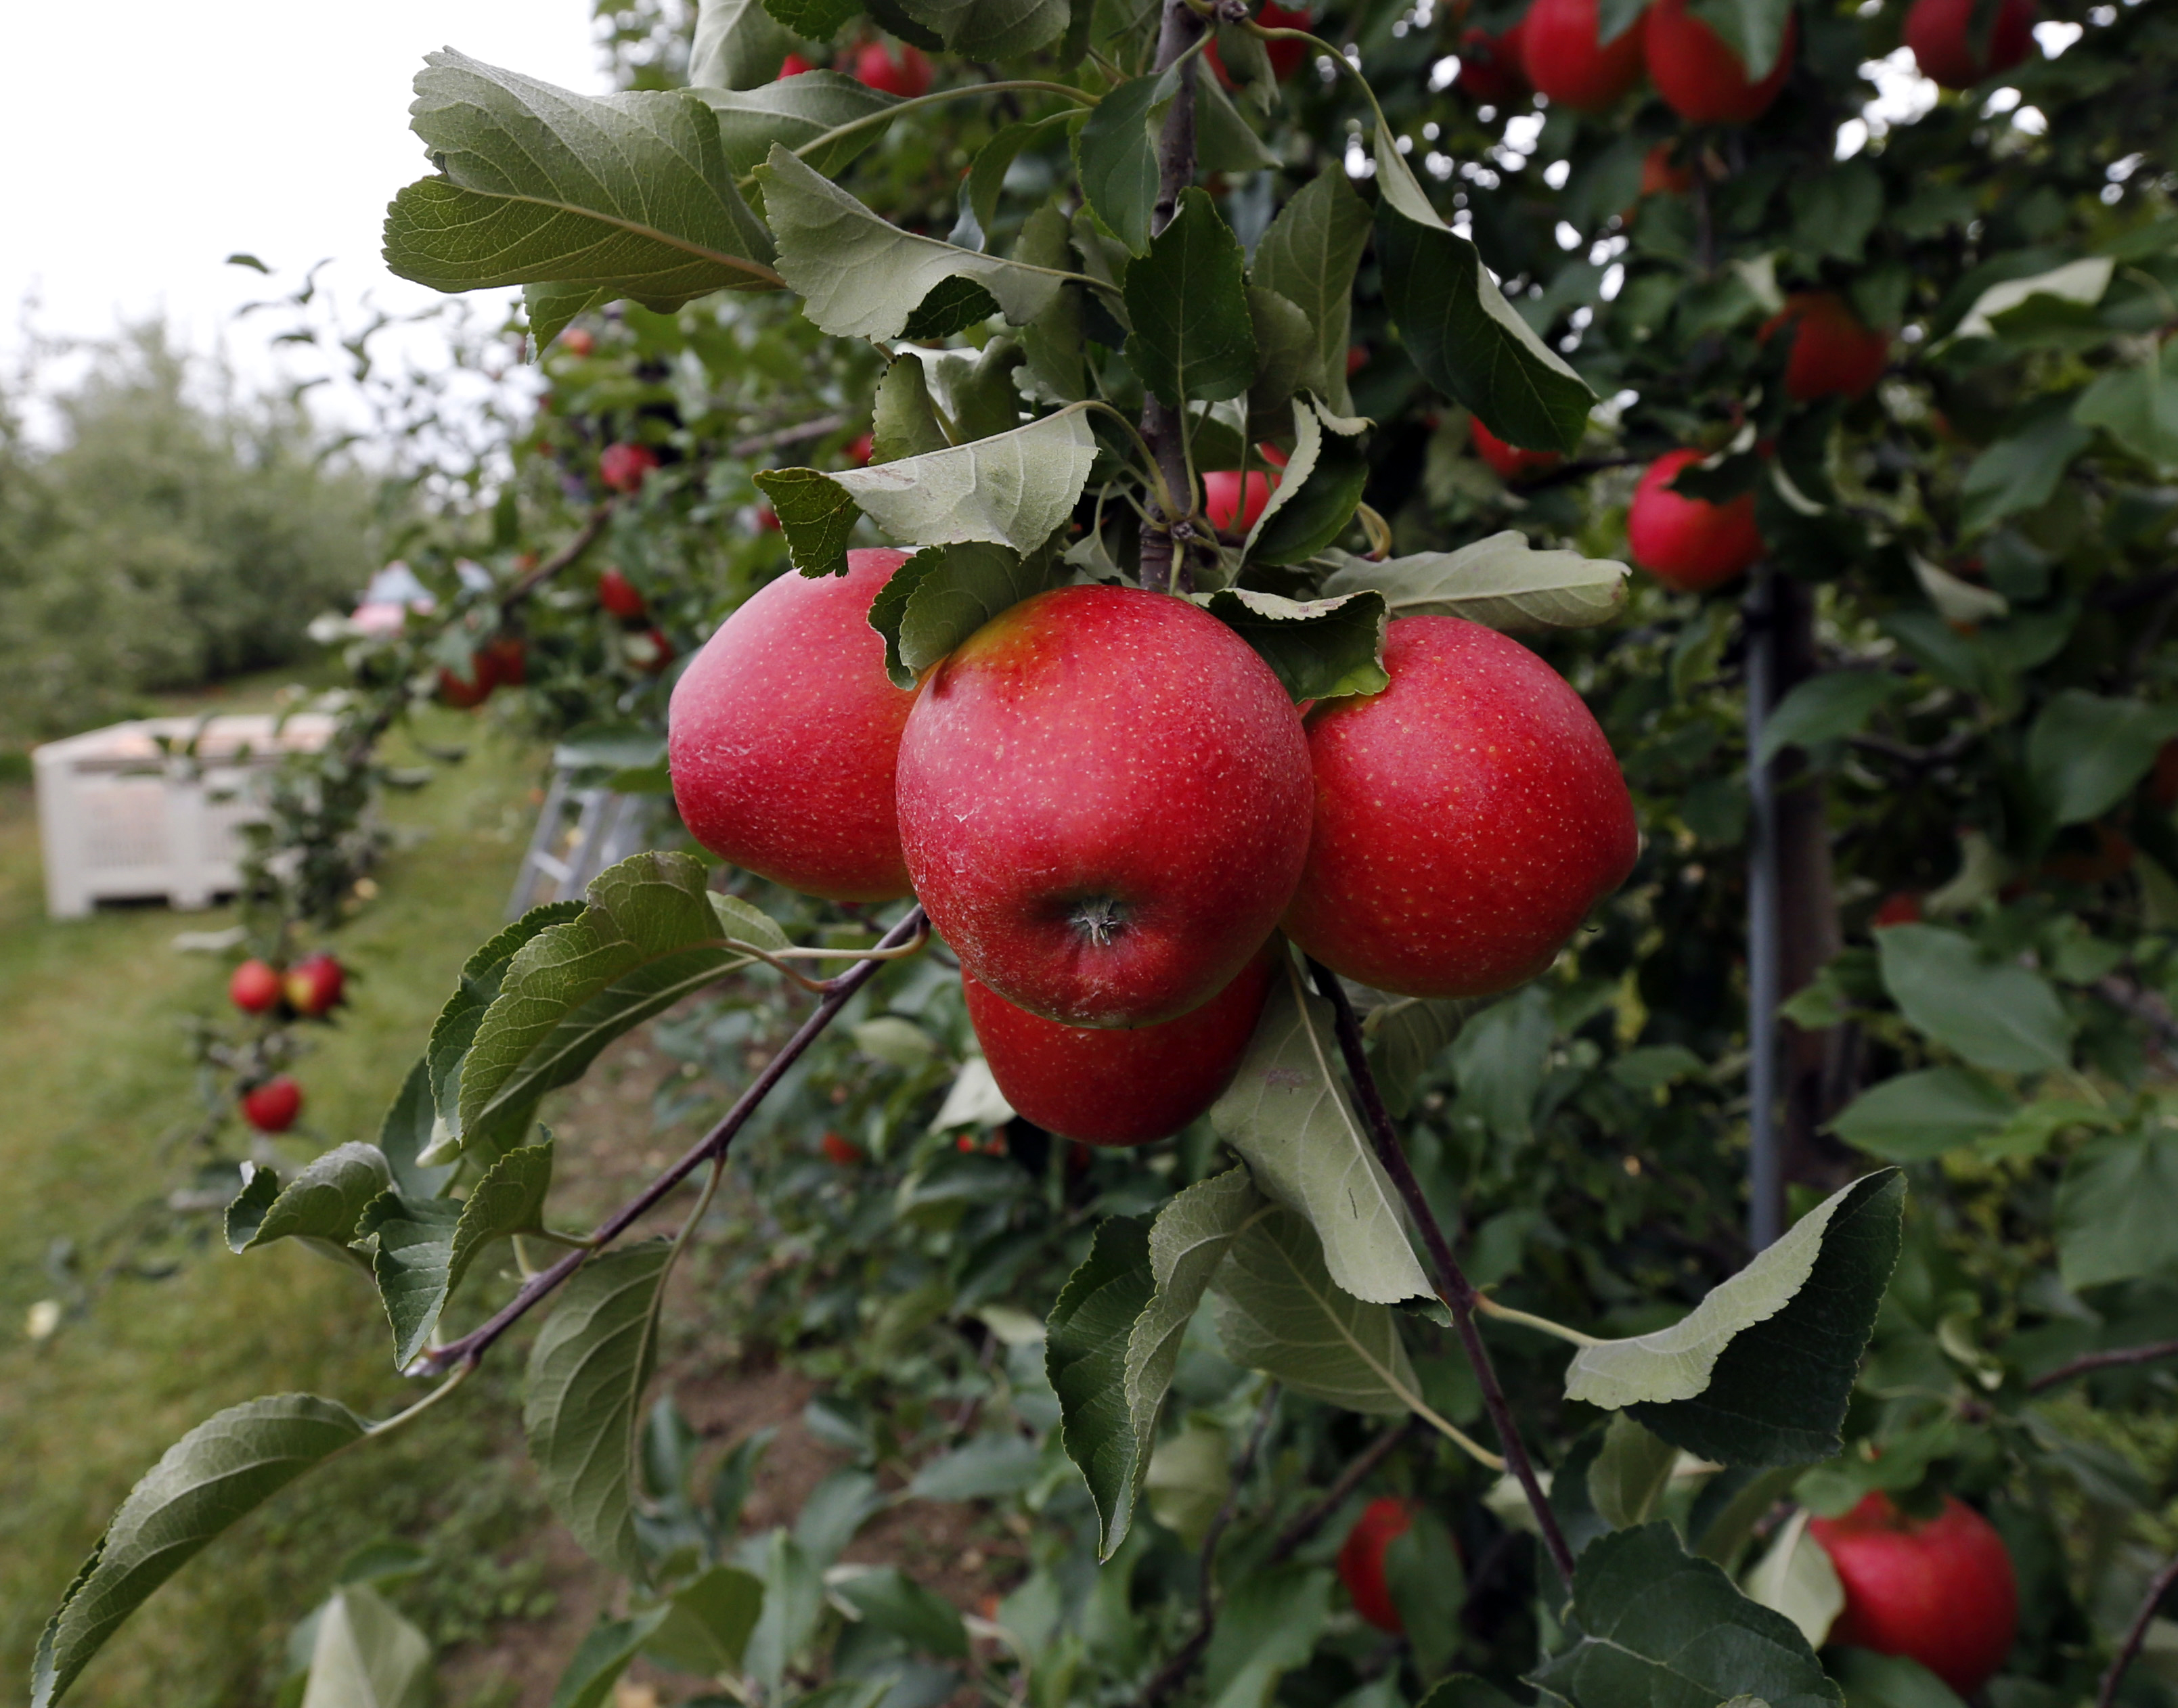 Chomp into apple season with festivals, dinners, orchards, cider